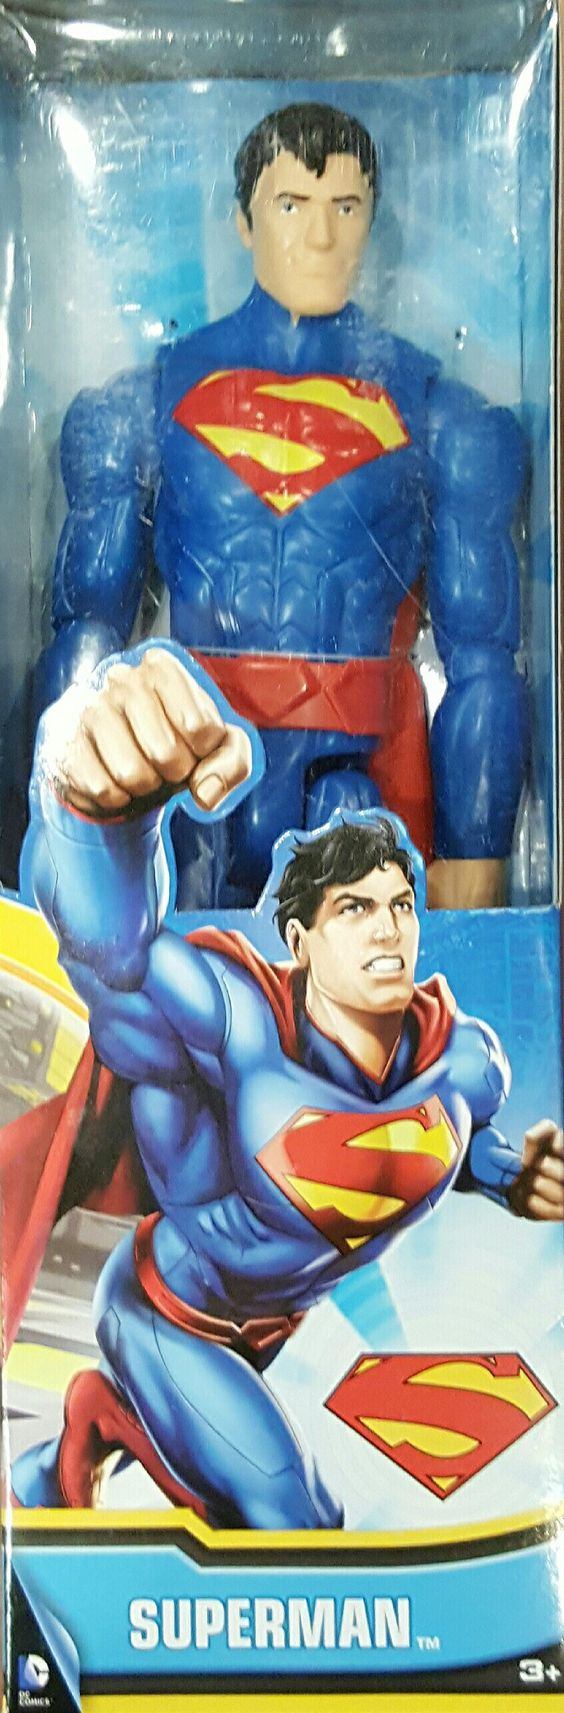 Superman in original packaging